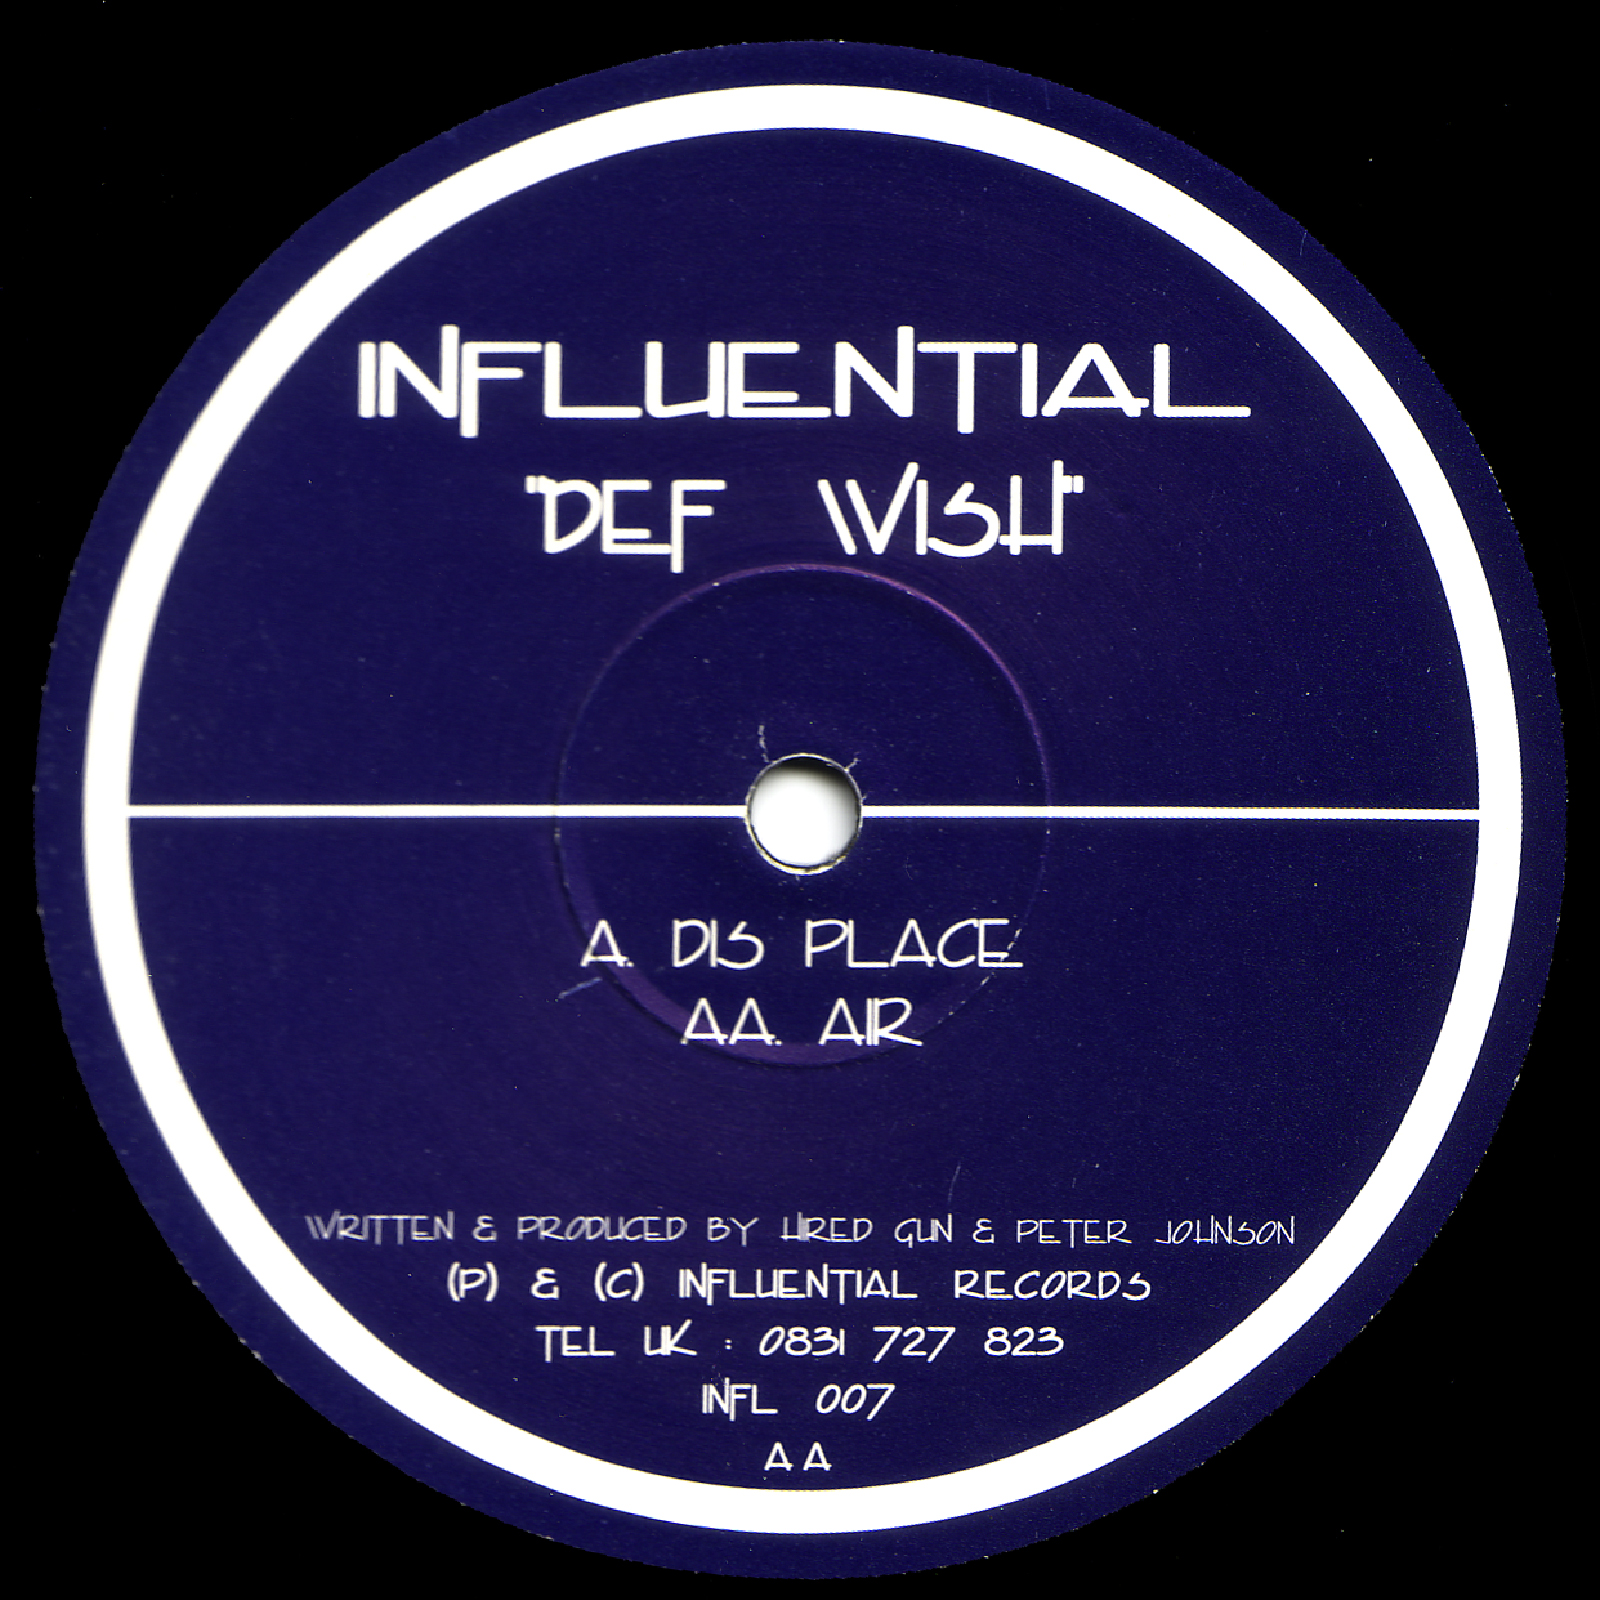 [INFL007] Def Wish - Dis Place EP (Digital Only)